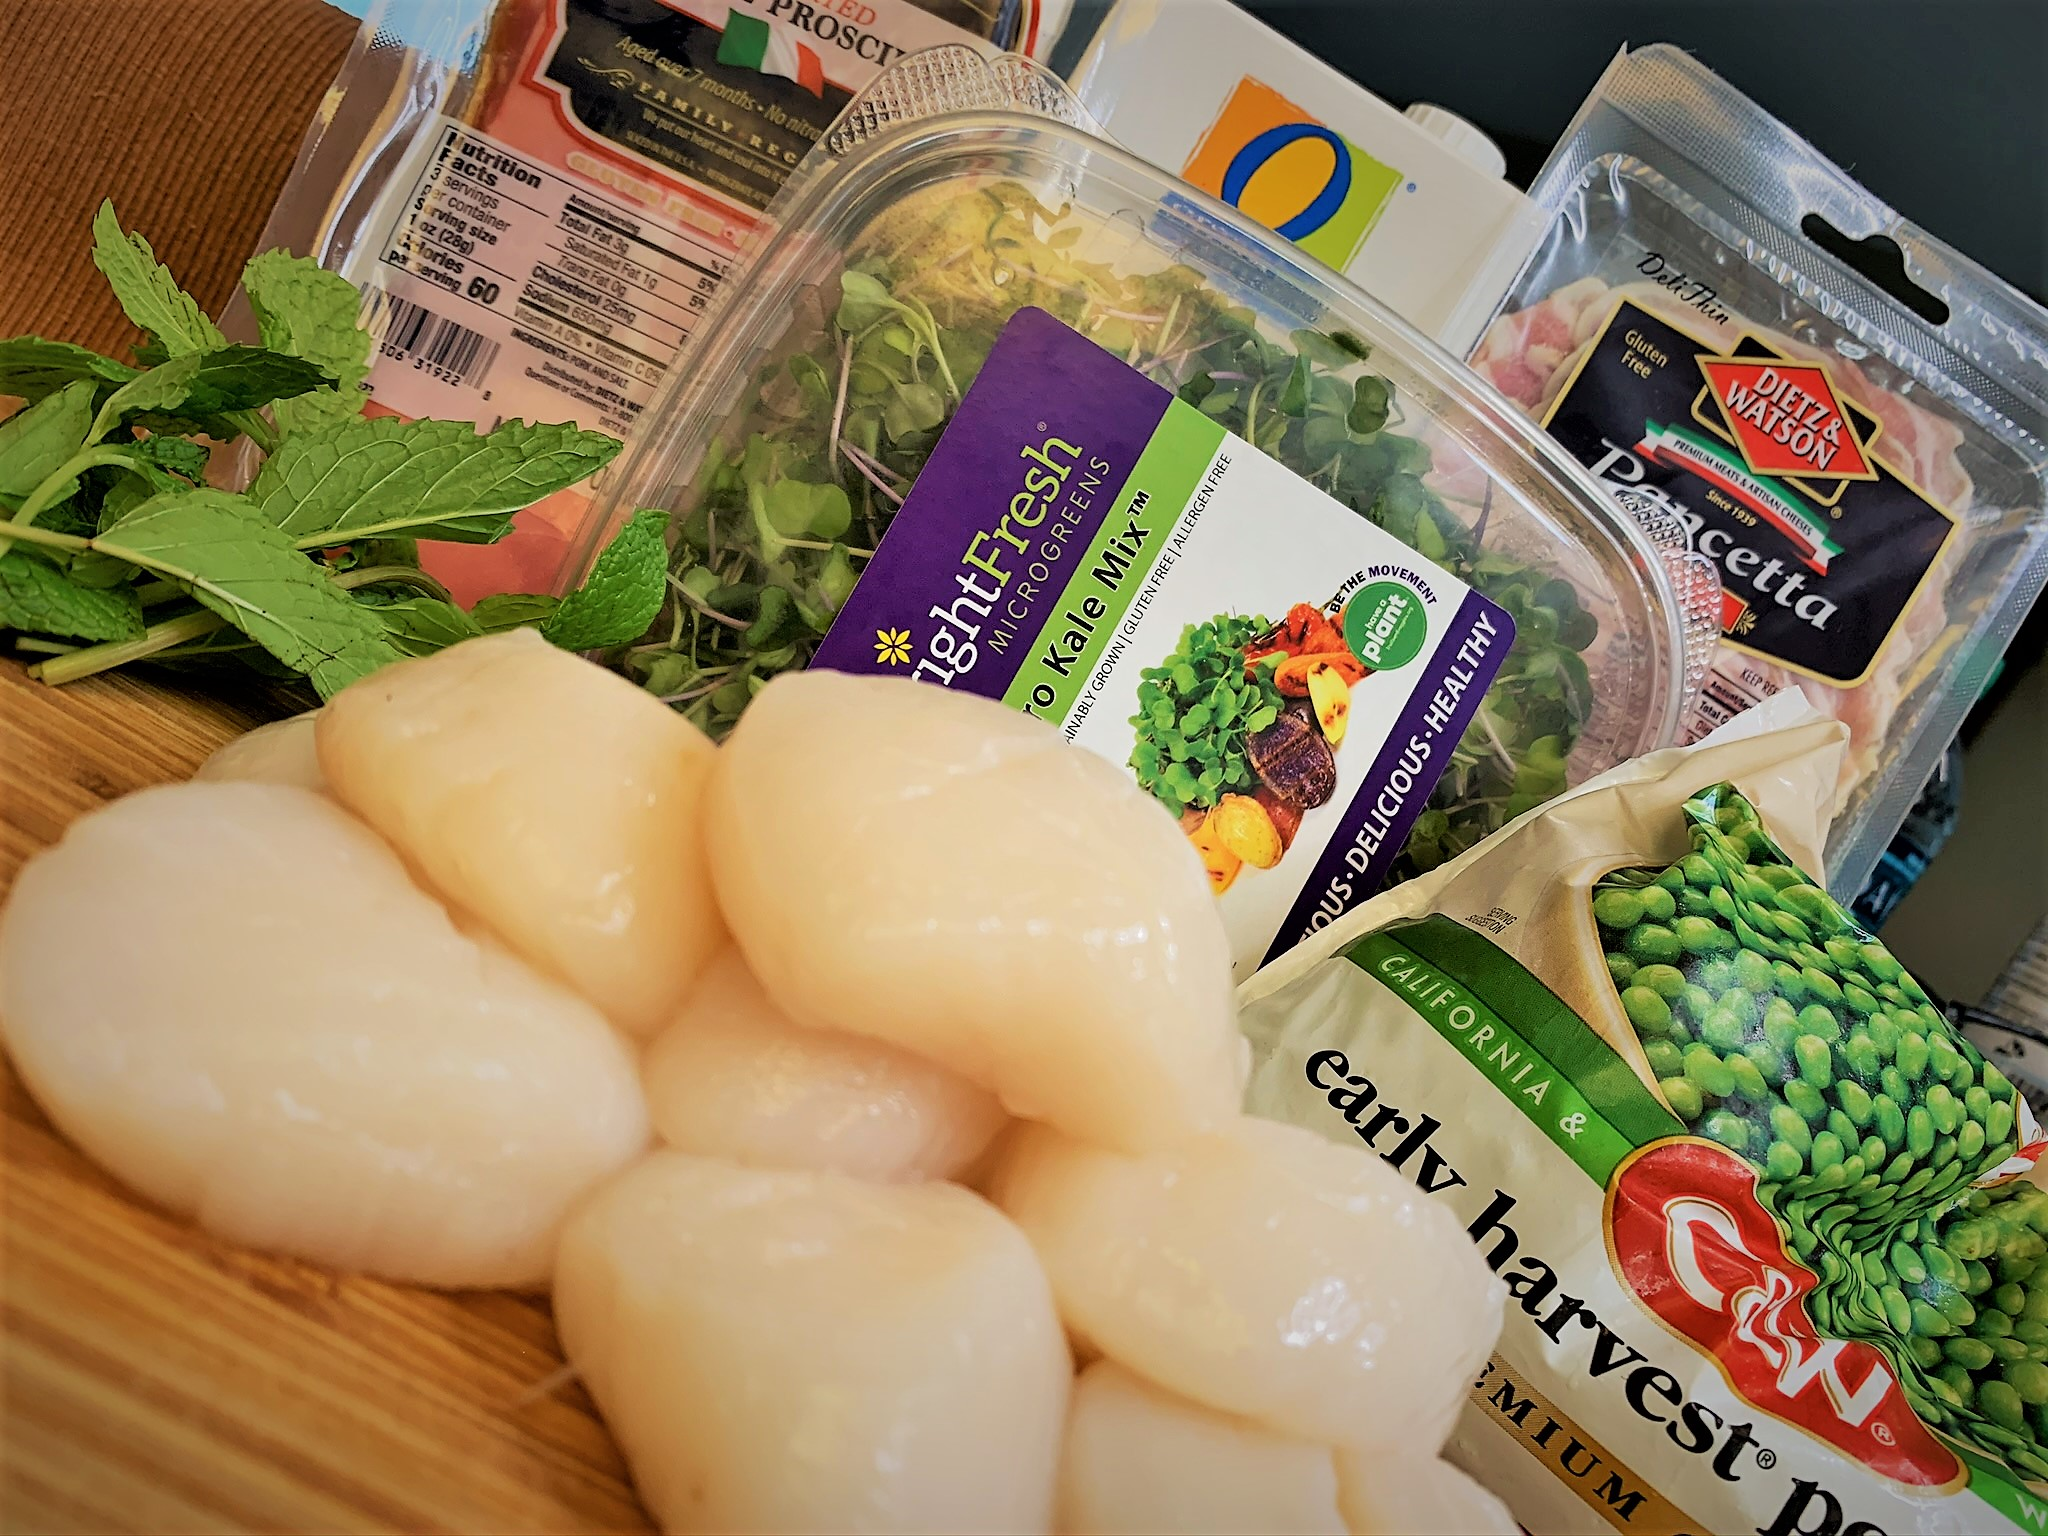 The ingredients for our Pancetta Seared Scallops with Crispy Prosciutto and Minted Pea Puree